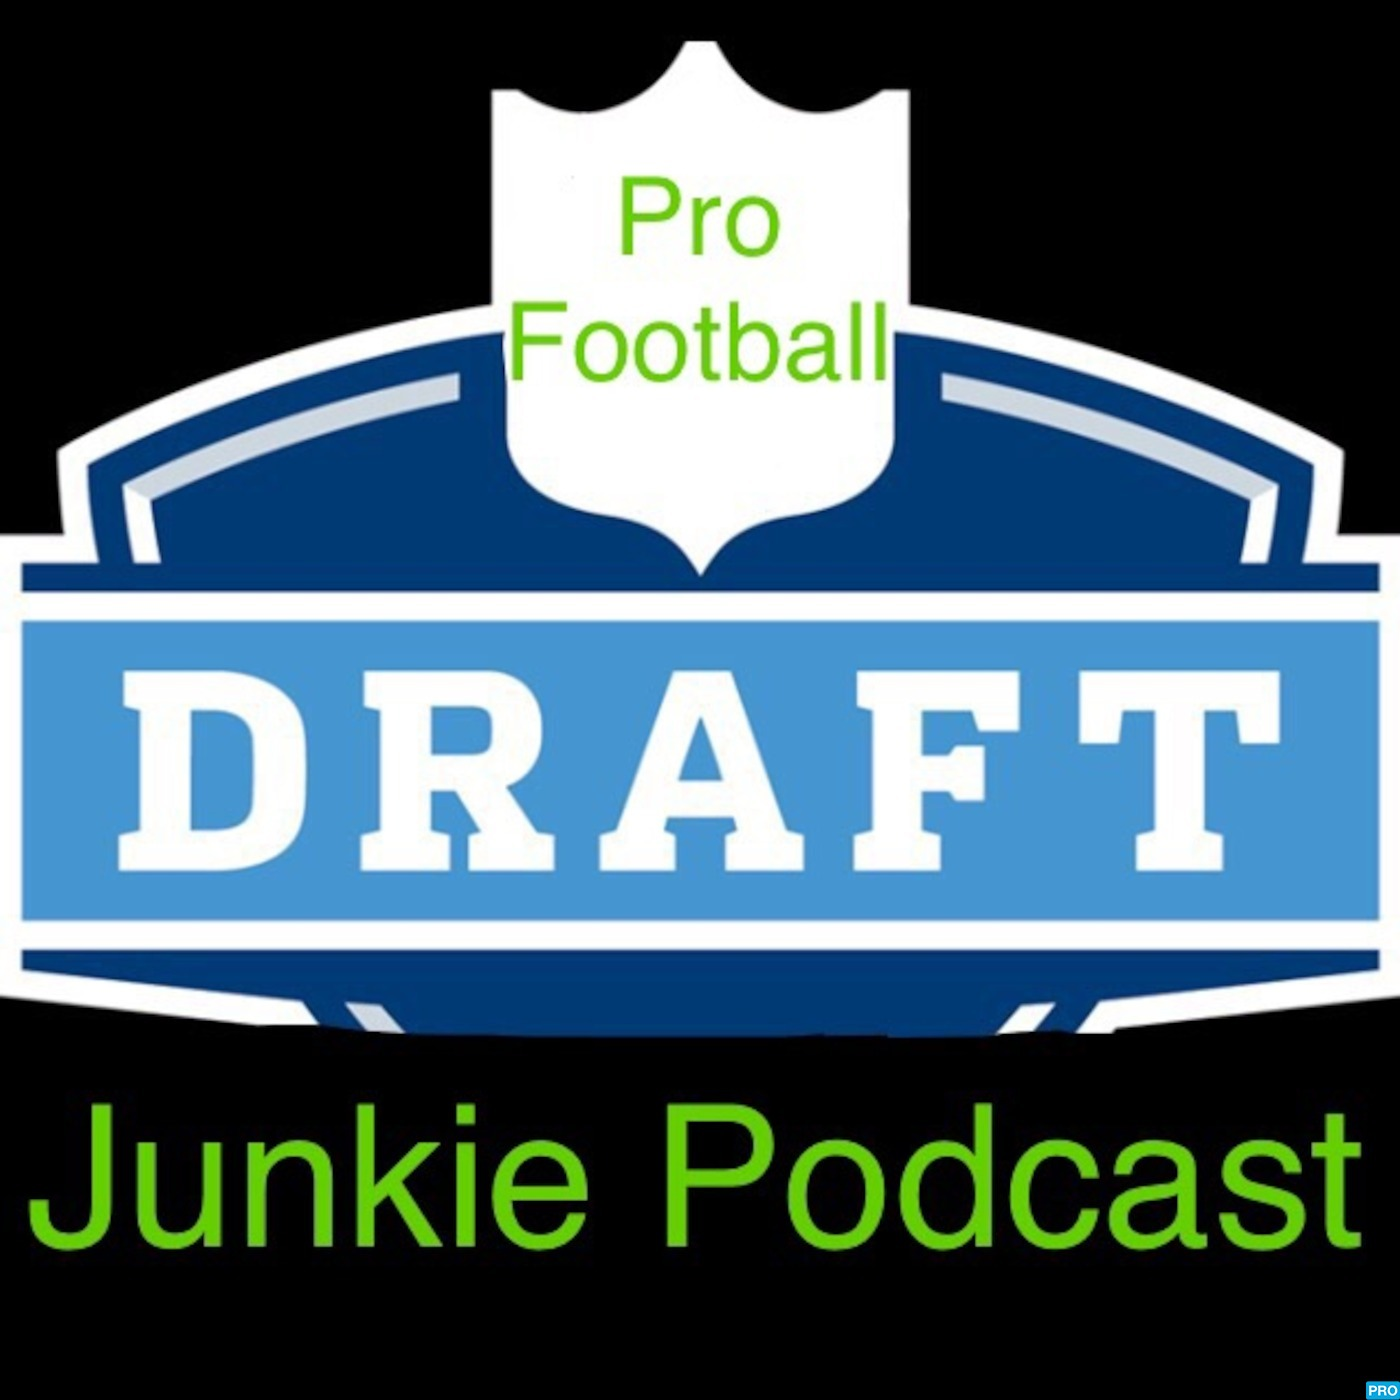 NFL Draft Junkie's Podcast